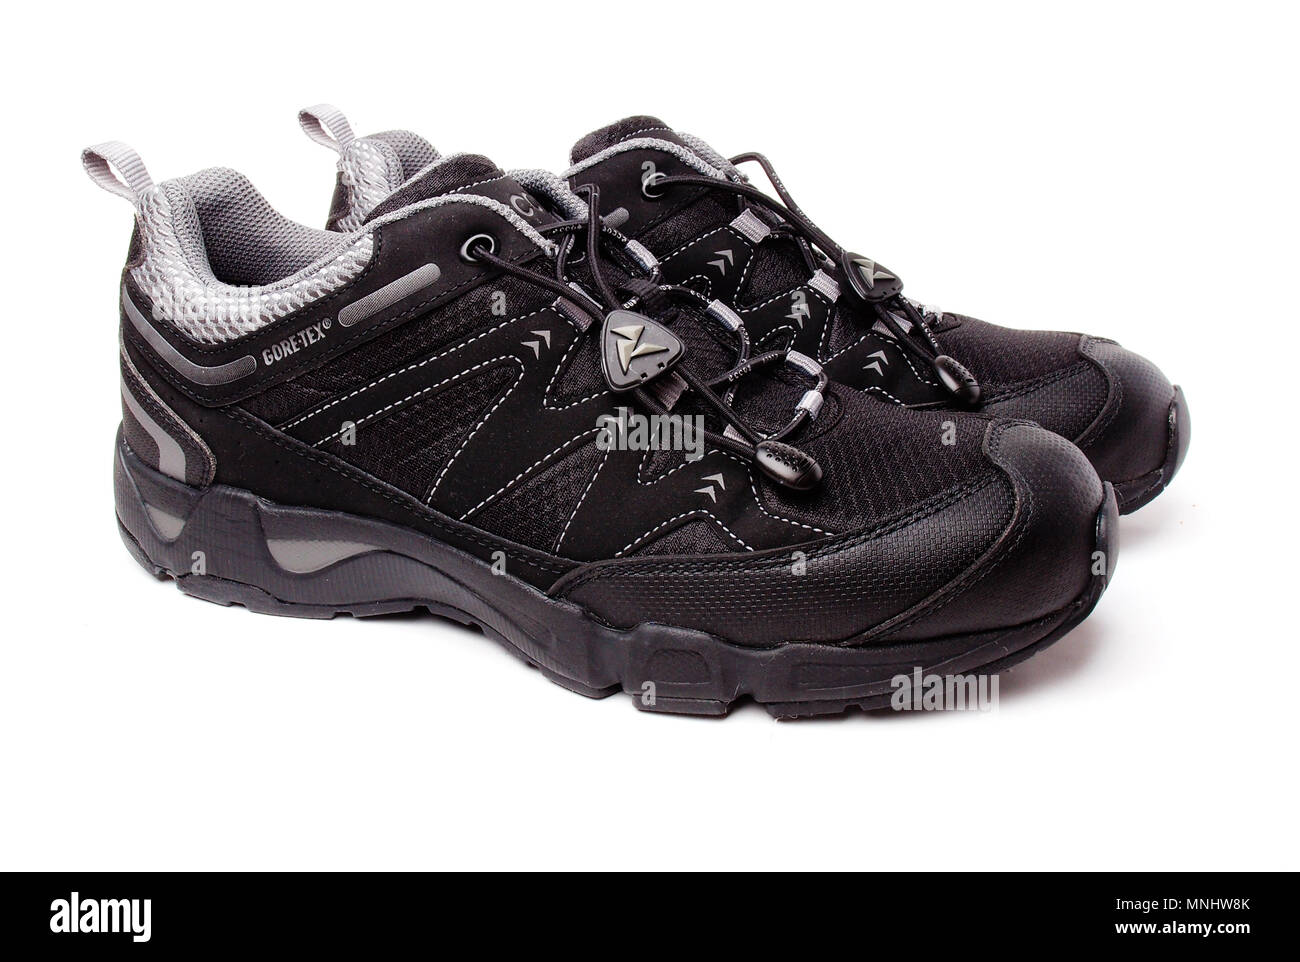 0257ef26356e37 A pair of Men s Ultra Terrain shoes from Ecco intended for outdoor use. -